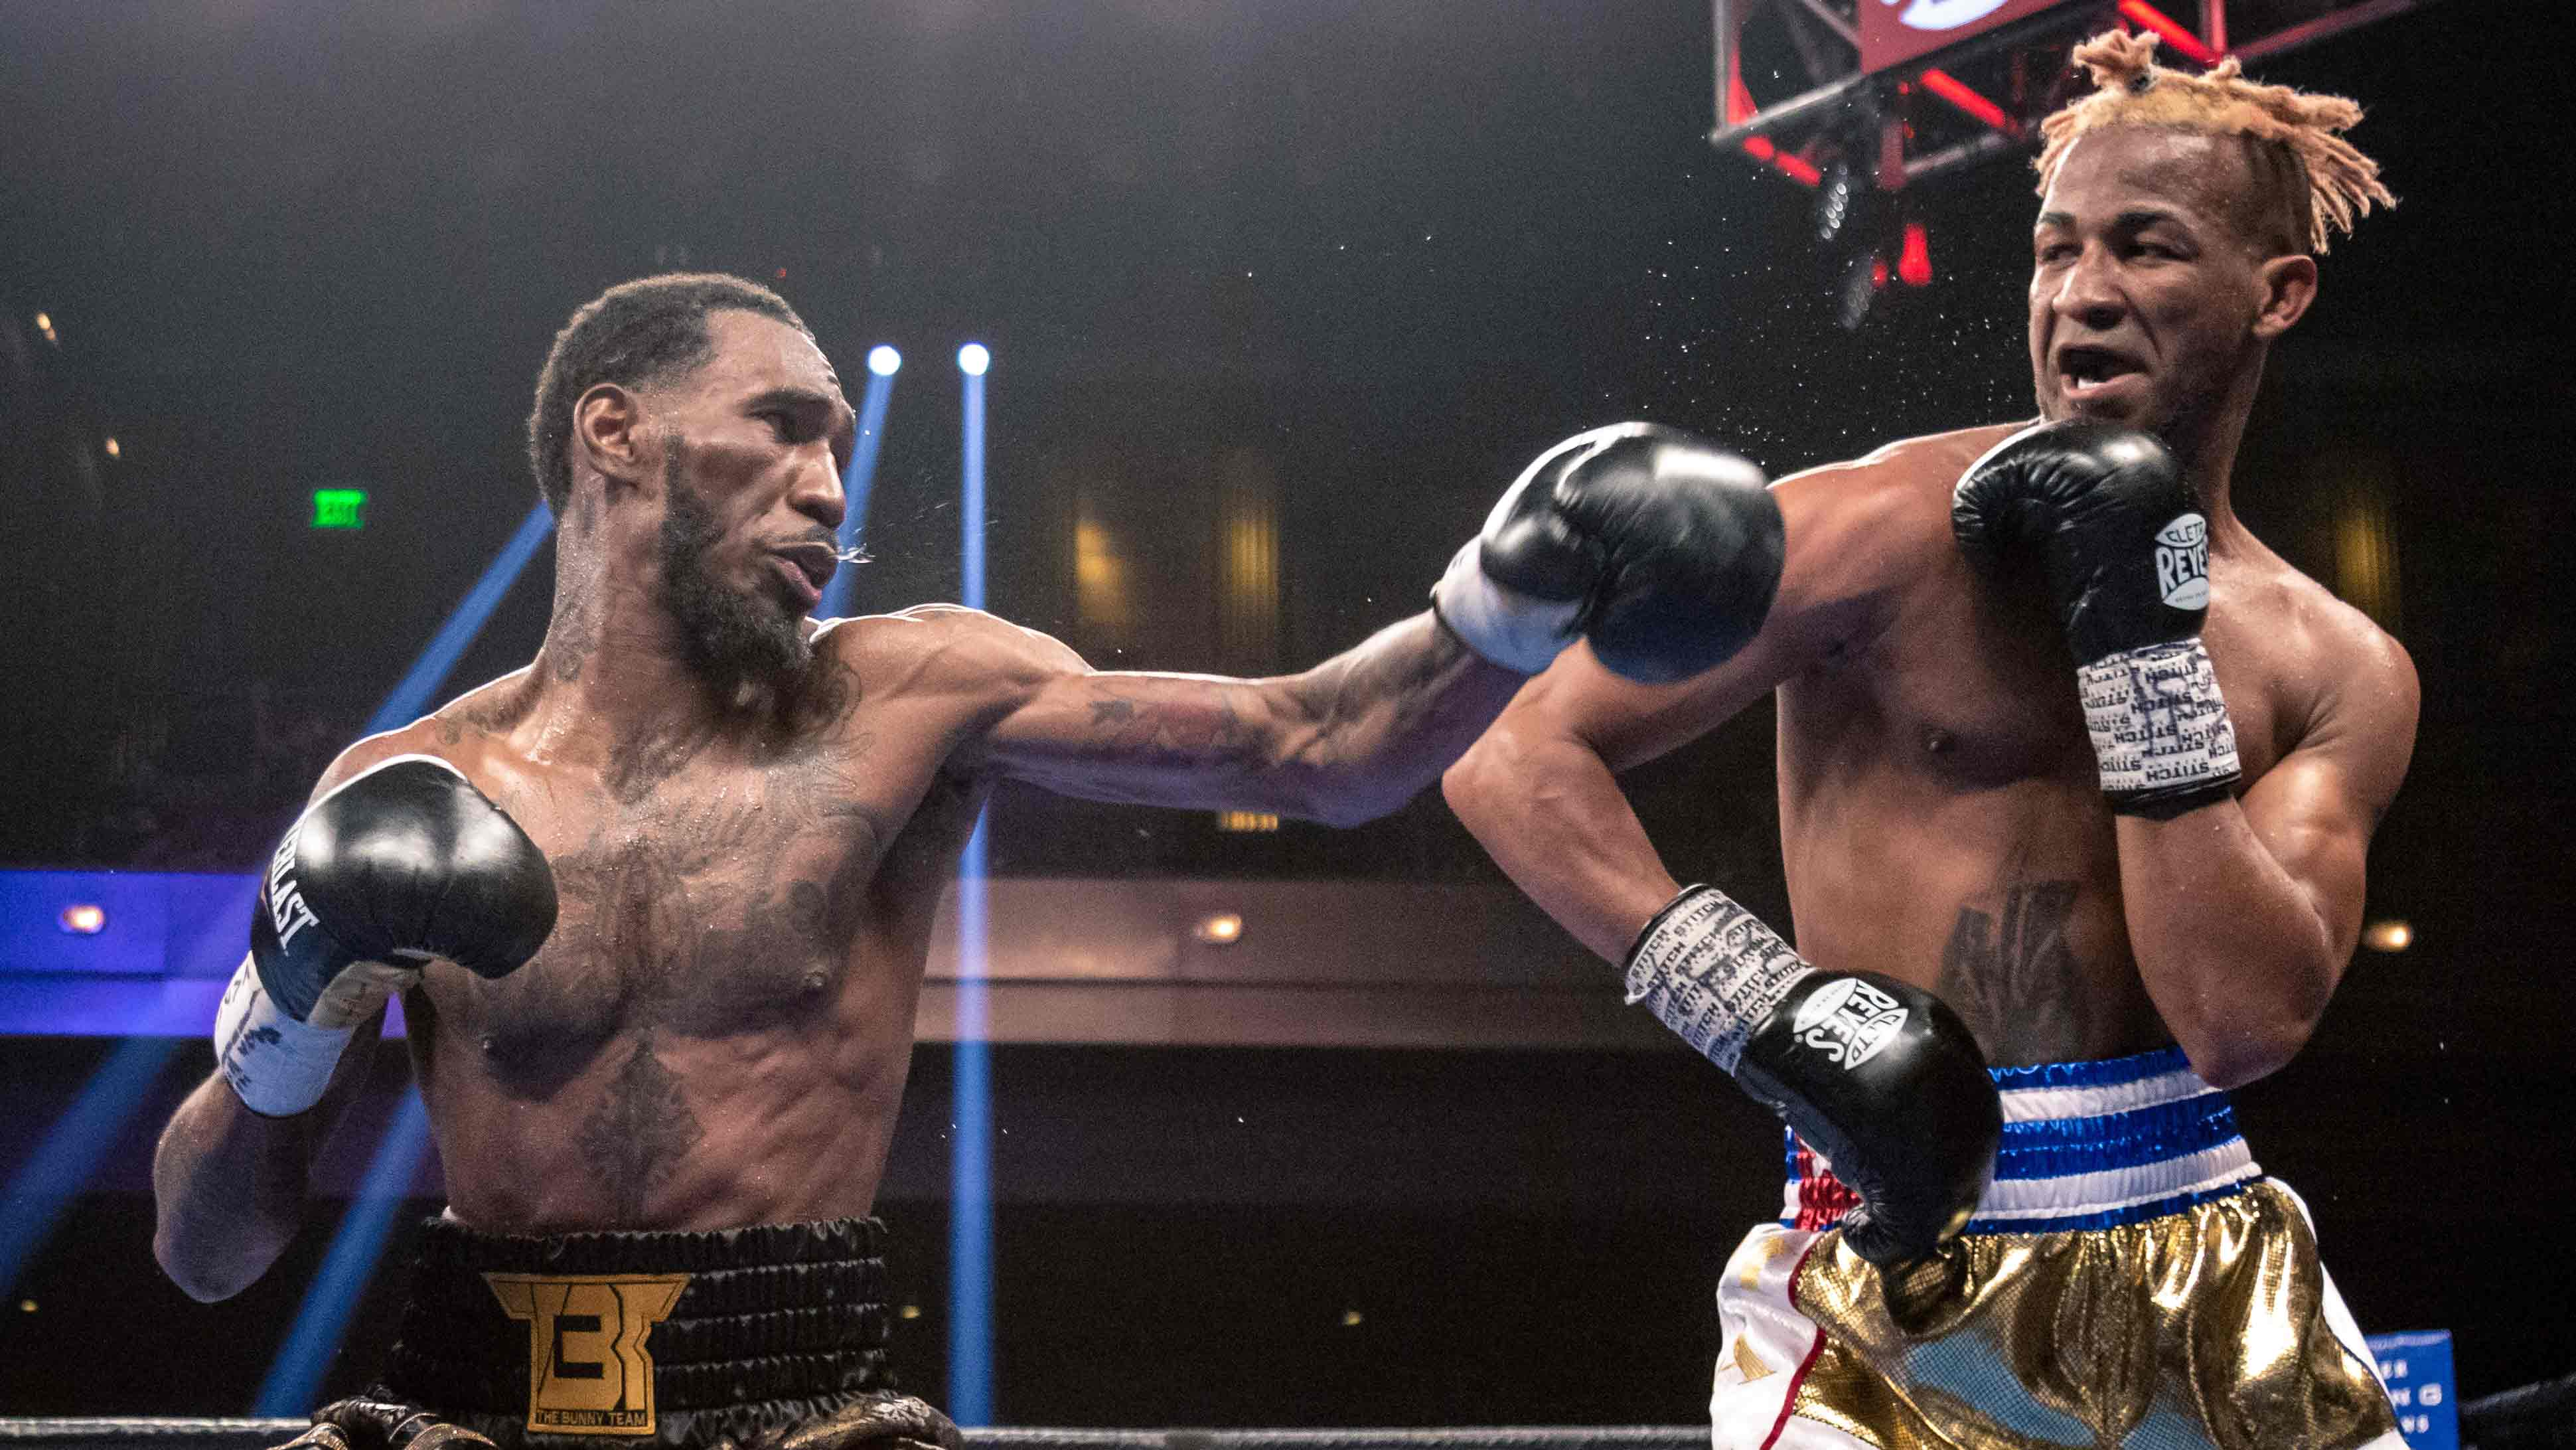 Alexis Texas Boxing easter vs. barthelemy ends in split draw